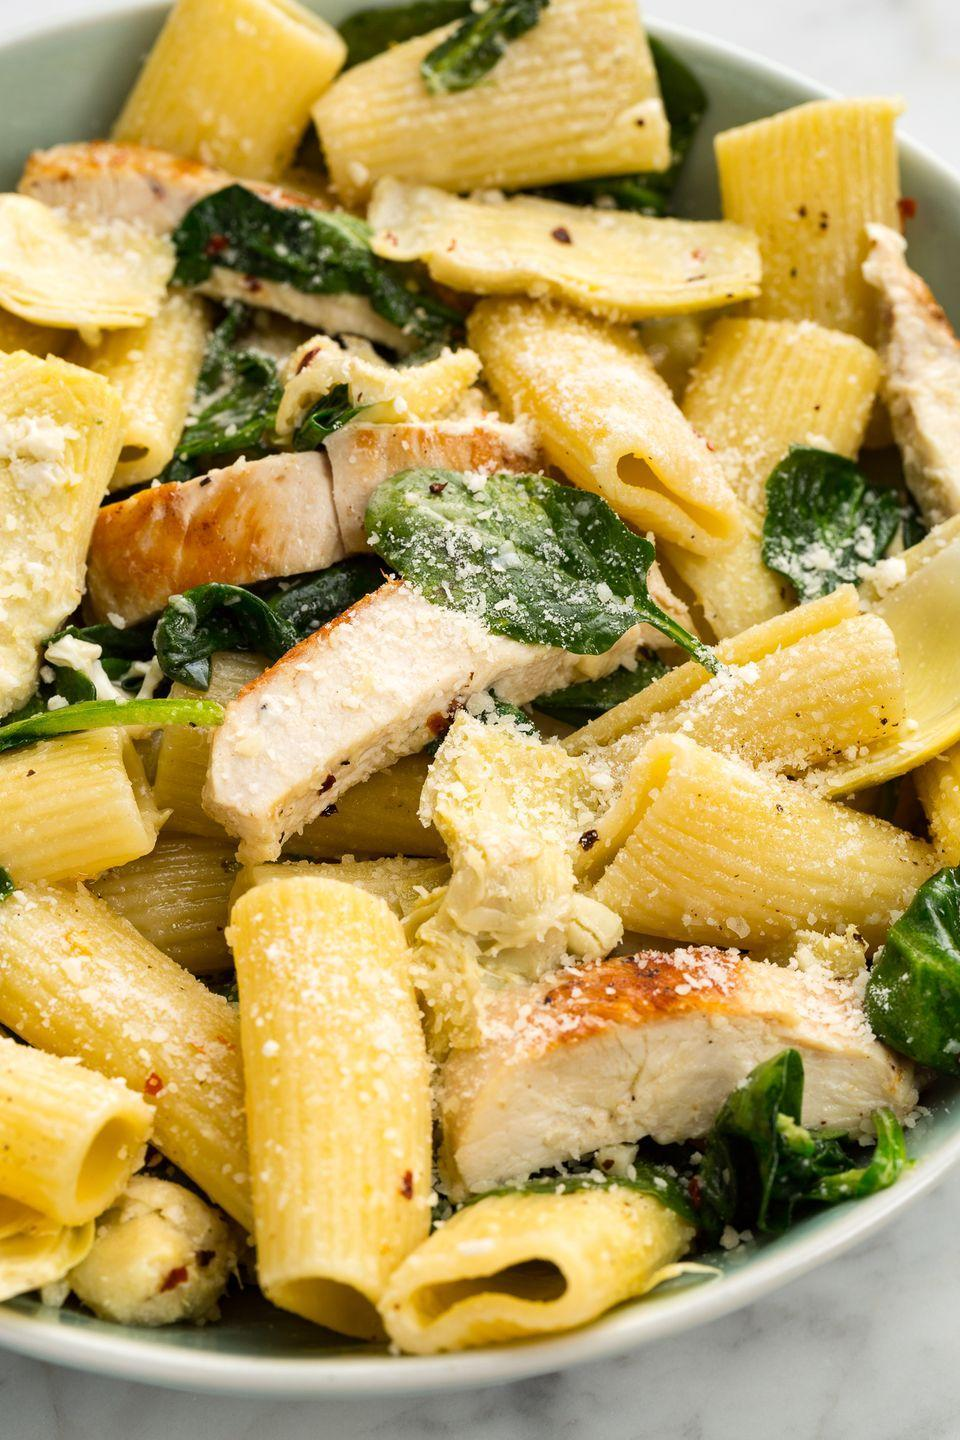 """<p>Your favorite dip deconstructed as a pasta? Yes, please.</p><p>Get the recipe from <a href=""""https://www.delish.com/cooking/recipe-ideas/recipes/a46527/chicken-spinach-and-artichoke-rigatoni-recipe/"""" rel=""""nofollow noopener"""" target=""""_blank"""" data-ylk=""""slk:Delish"""" class=""""link rapid-noclick-resp"""">Delish</a>.</p><p><strong><a class=""""link rapid-noclick-resp"""" href=""""https://www.amazon.com/Cuisinart-Classic-Triple-8-Inch-C77TR-CF-25/dp/B00GIBK8RA/?tag=syn-yahoo-20&ascsubtag=%5Bartid%7C1782.g.242%5Bsrc%7Cyahoo-us"""" rel=""""nofollow noopener"""" target=""""_blank"""" data-ylk=""""slk:BUY NOW"""">BUY NOW</a><em> Cuisinart Classic Chef's Knife, $14, amazon.com</em></strong></p>"""